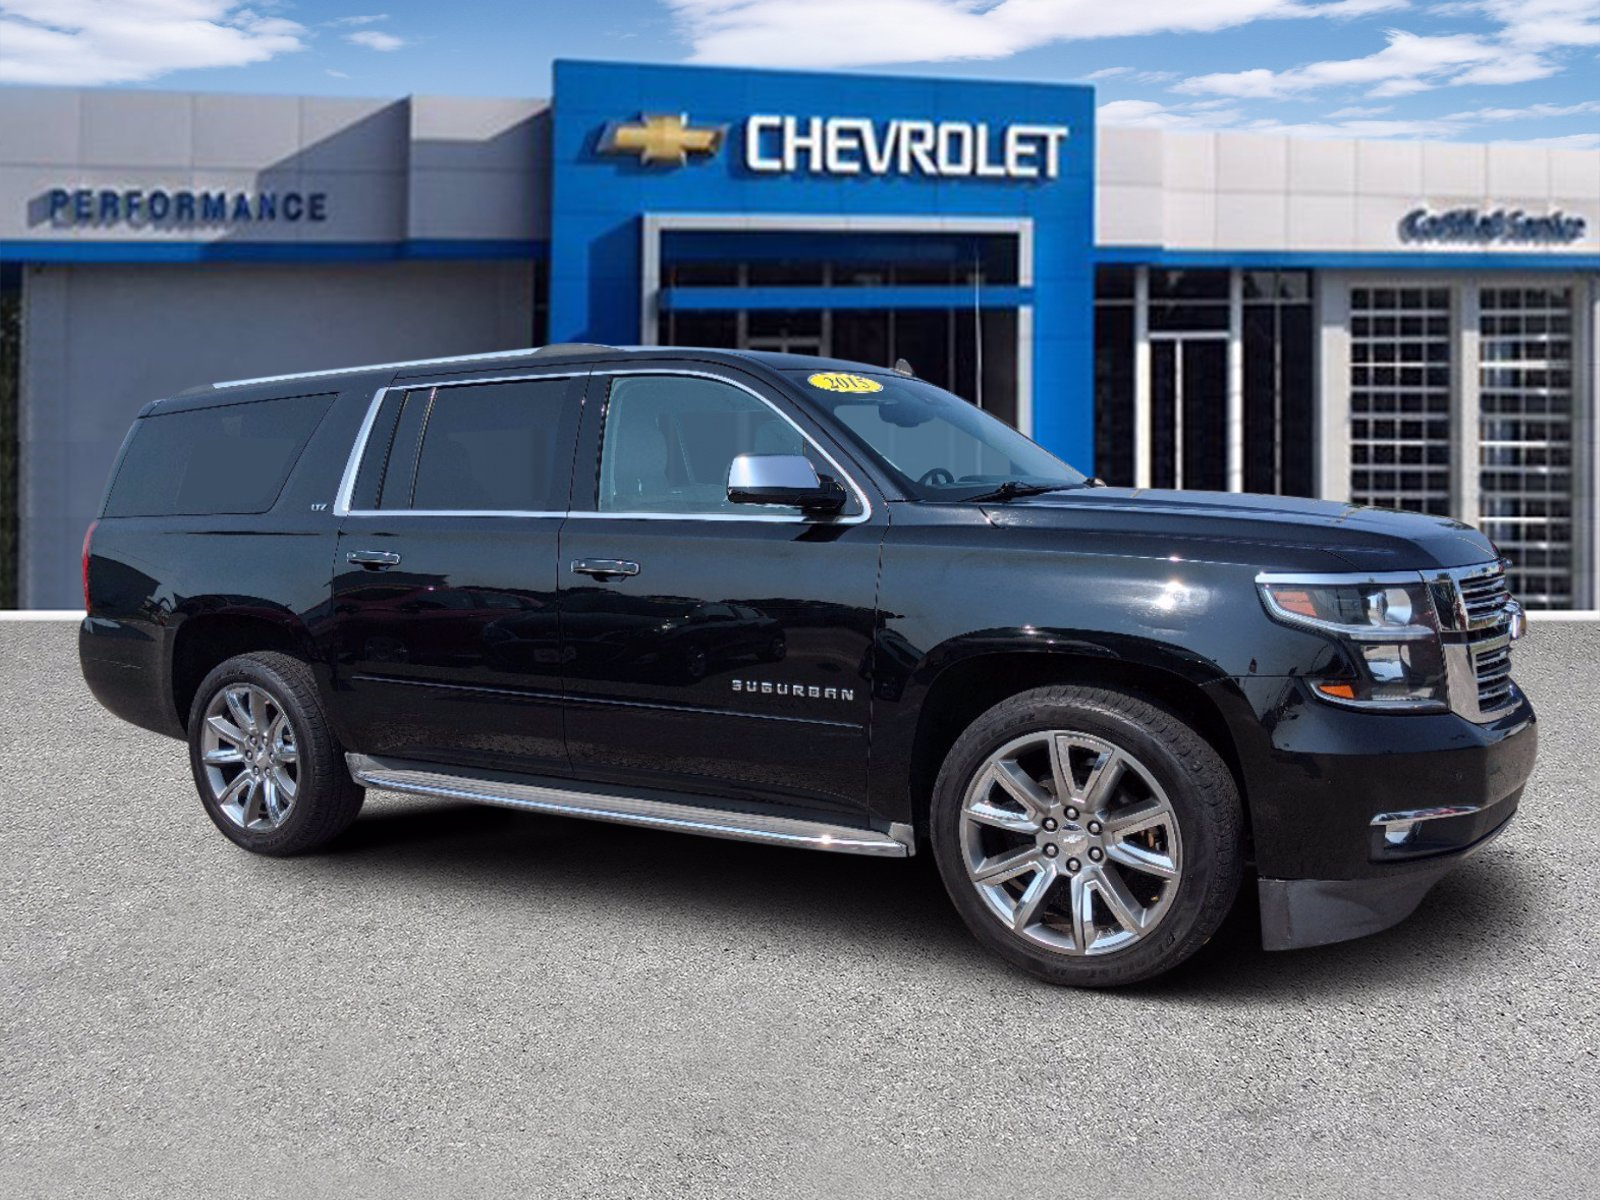 Pre-Owned 2015 Chevrolet Suburban LTZ FOUR_WHEEL_DRIVE SUV